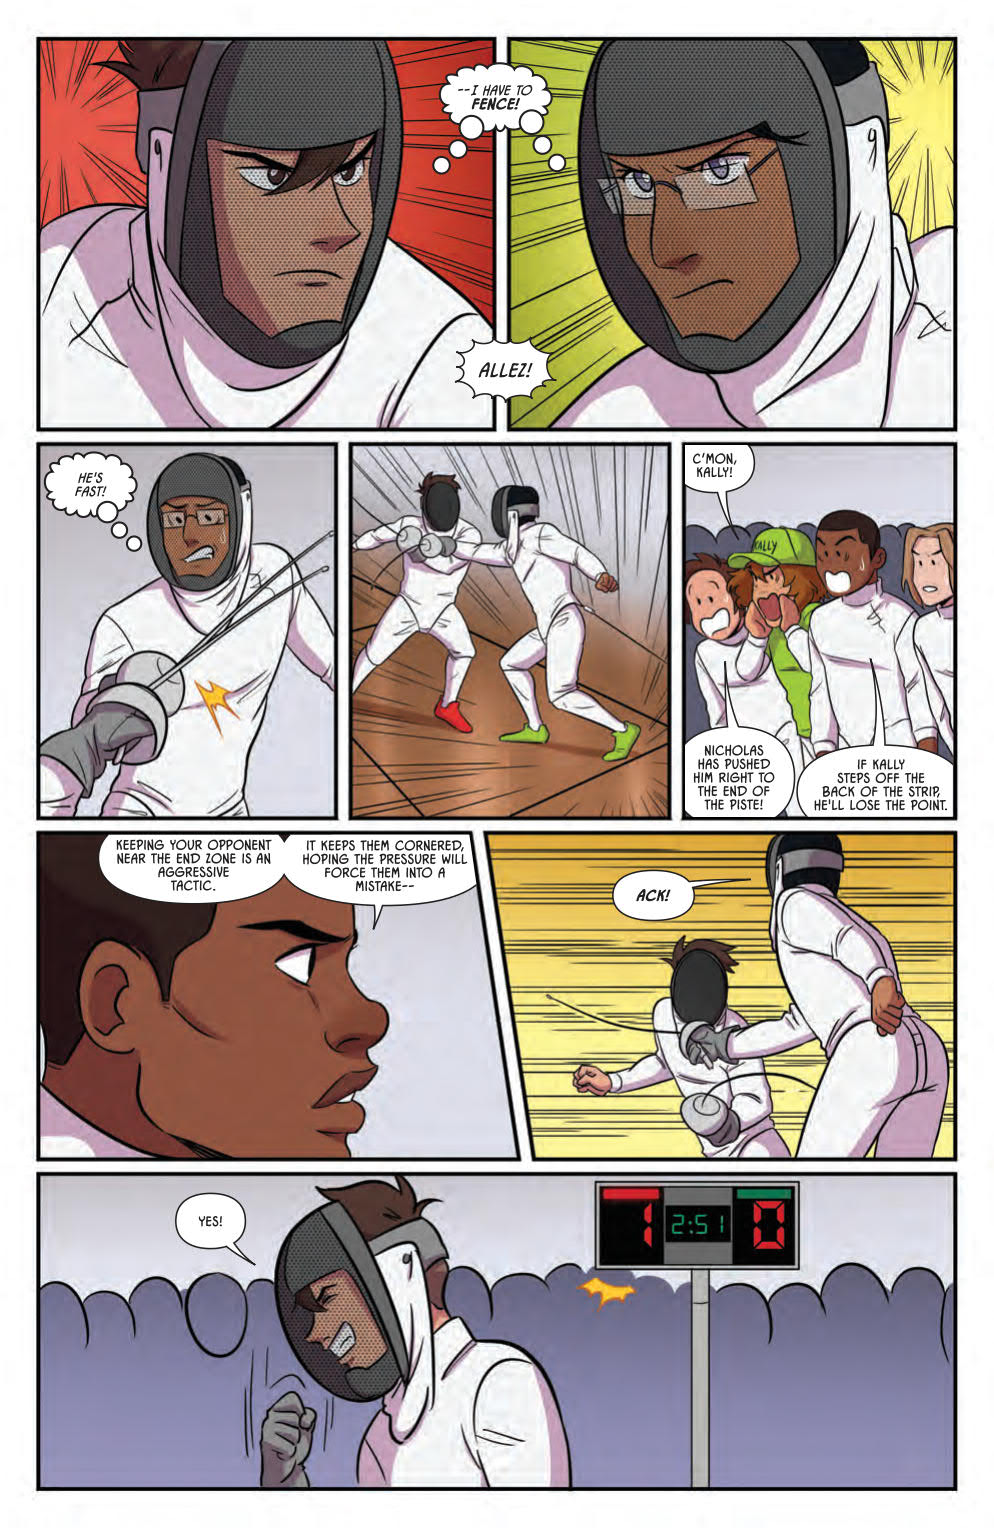 Kally and Nicholas fight each other in Fence Vol. 3.